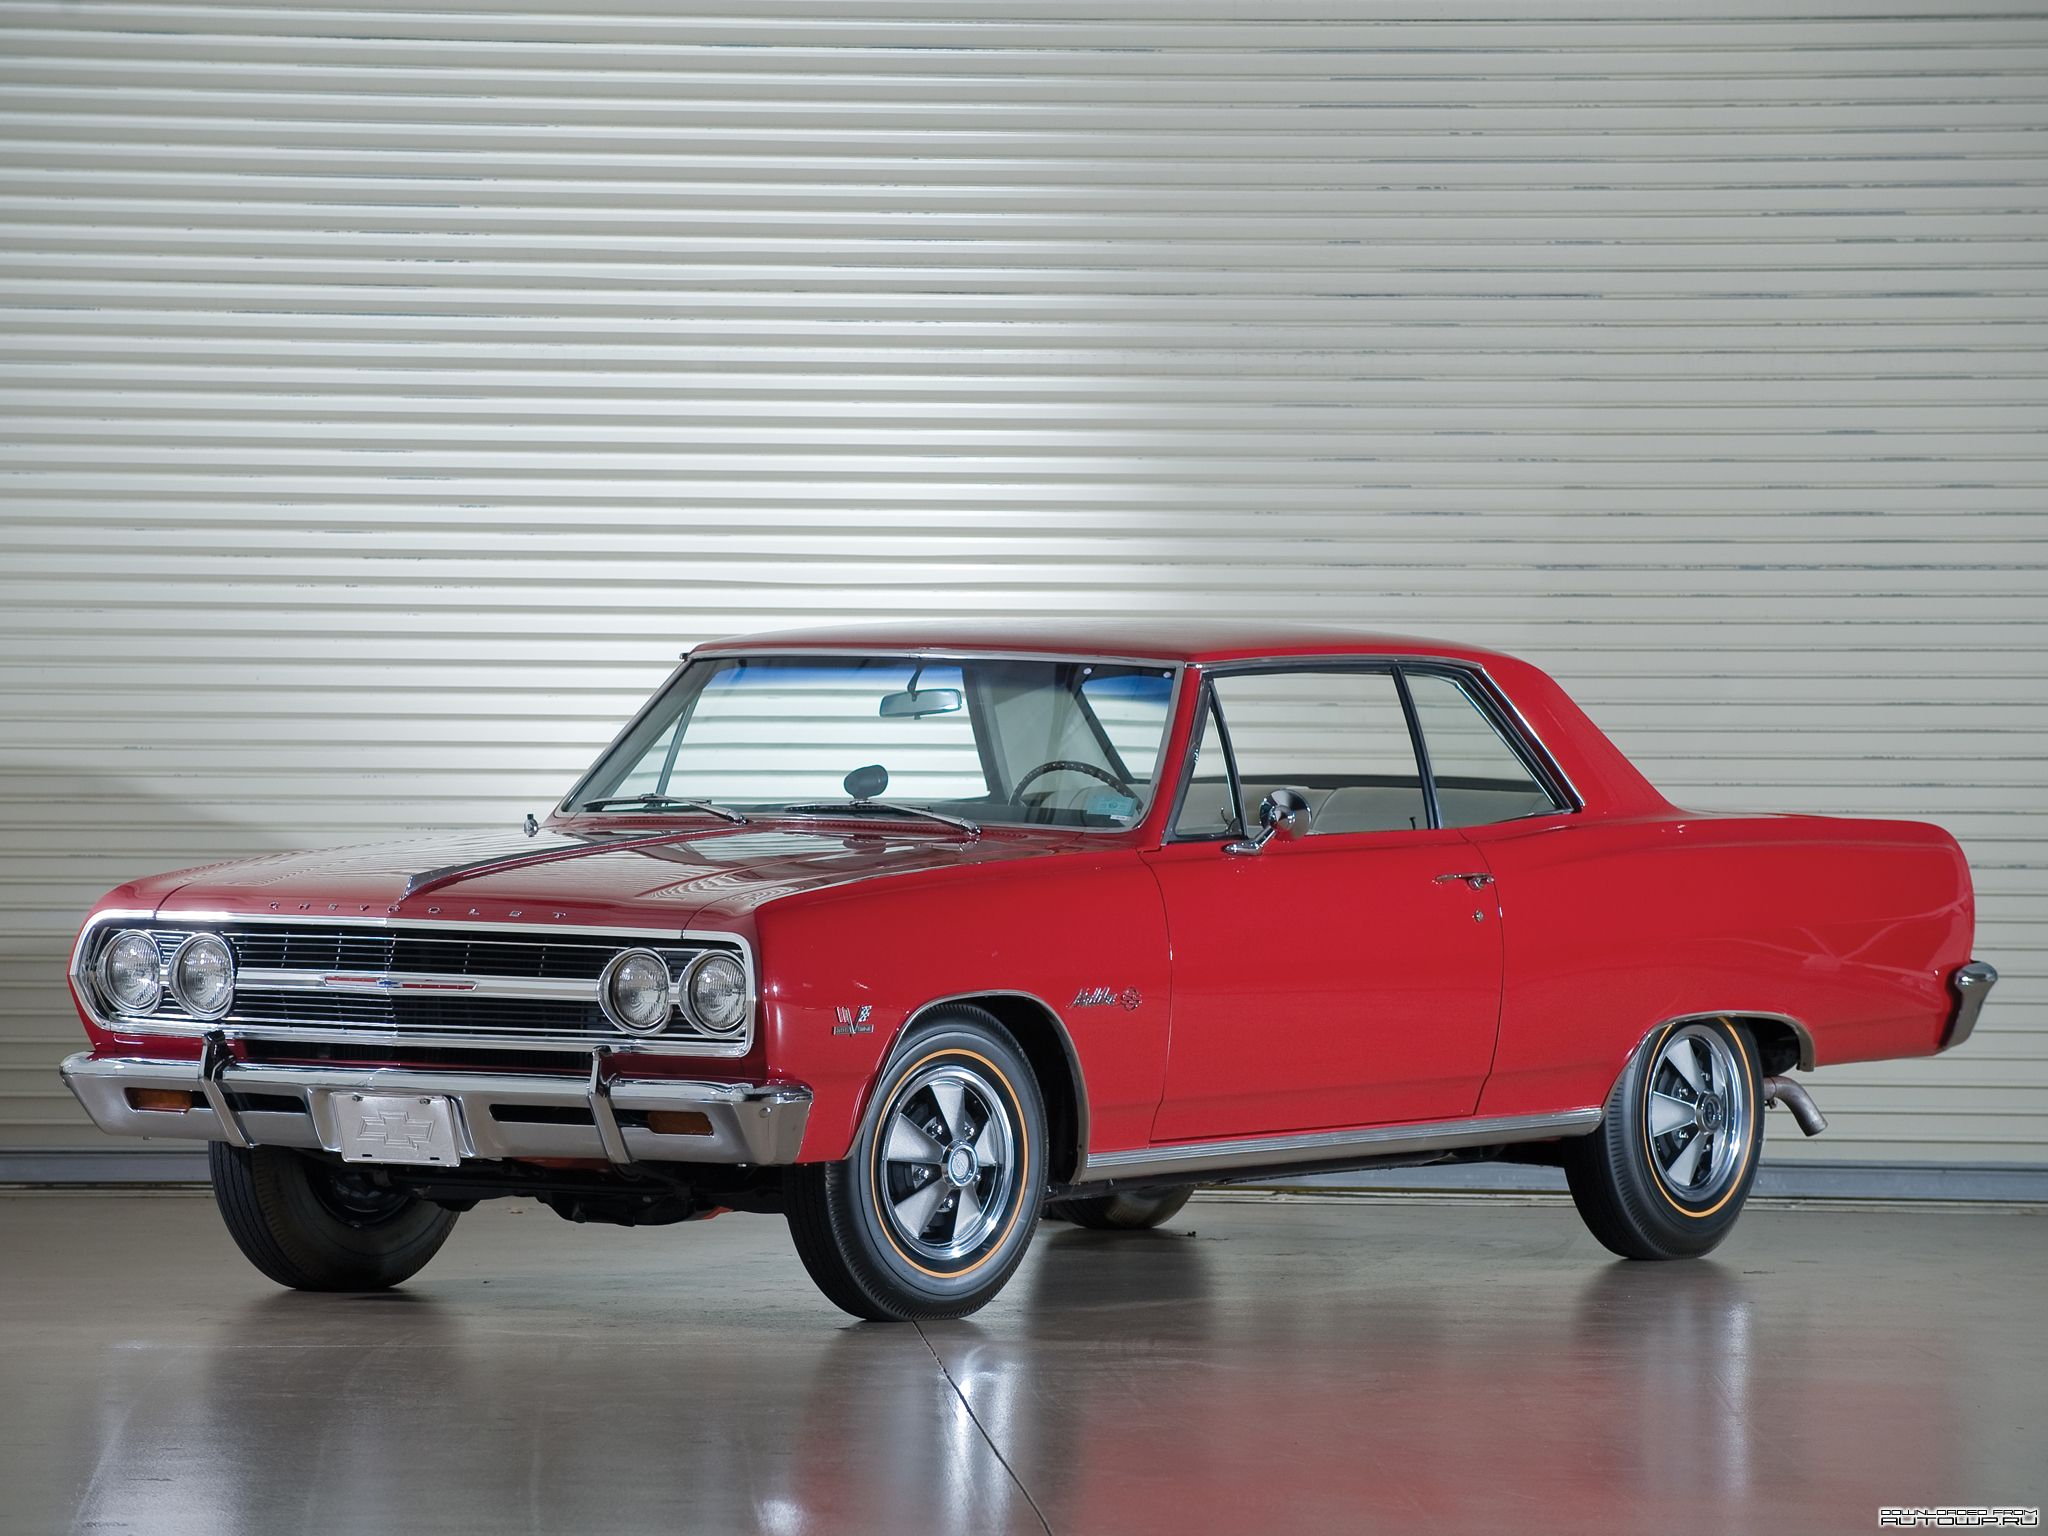 chevrolet chevelle malibu ss 396 pro z 16 coupe 39 1965 cars pinterest chevrolet chevelle. Black Bedroom Furniture Sets. Home Design Ideas